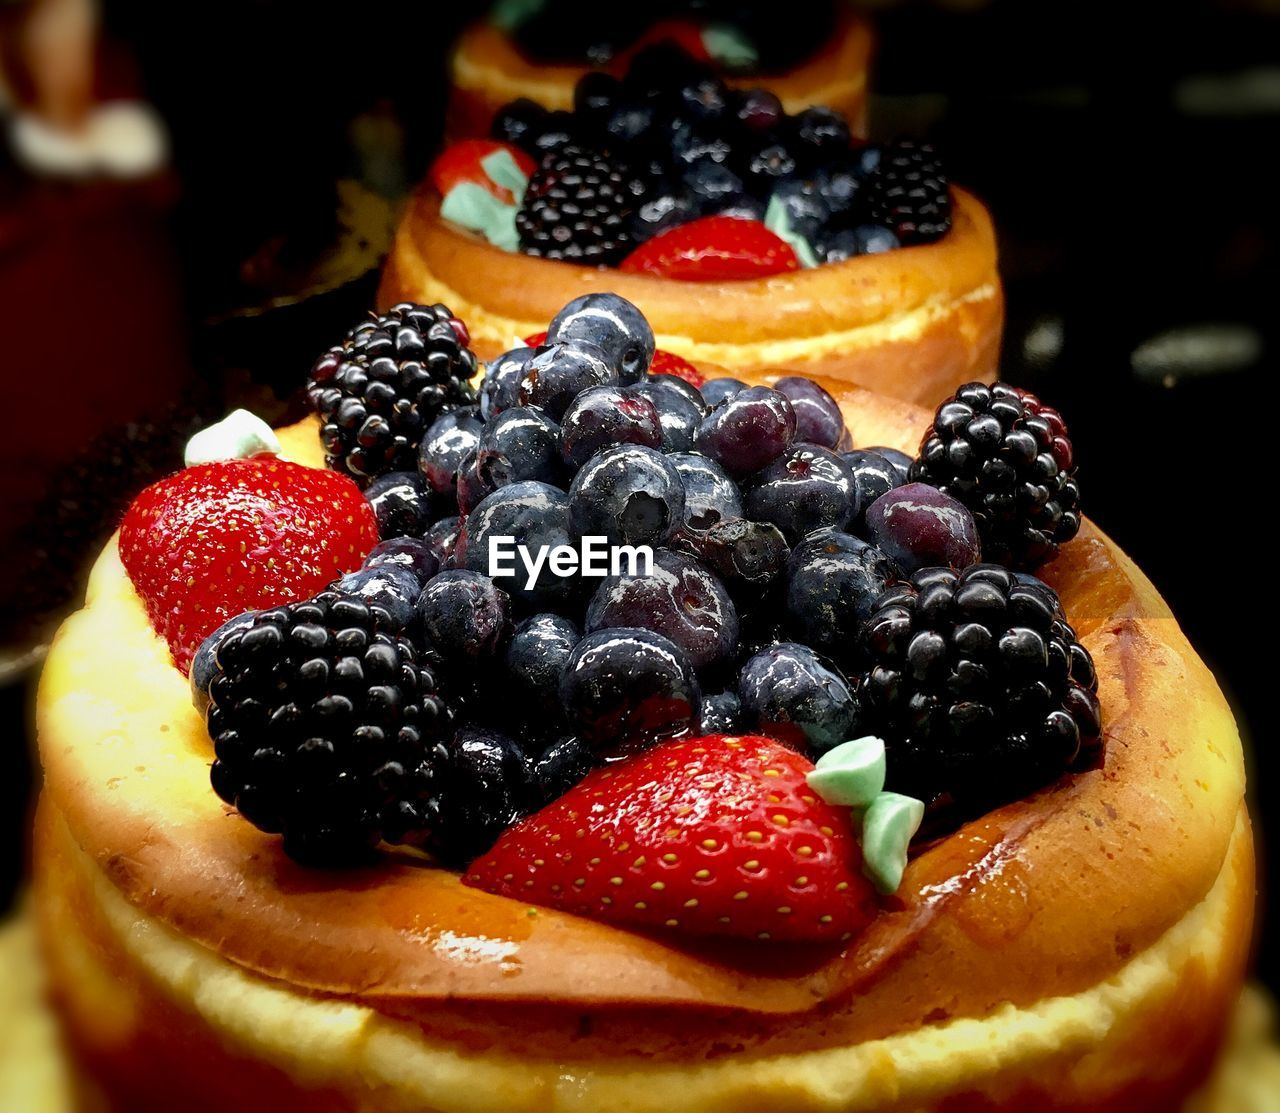 food and drink, sweet food, blueberry, food, fruit, freshness, strawberry, berry fruit, dessert, indulgence, blackberry, temptation, close-up, blackberry - fruit, still life, raspberry, cake, baked, ready-to-eat, indoors, no people, unhealthy eating, plate, tart - dessert, dessert topping, sweet pie, day